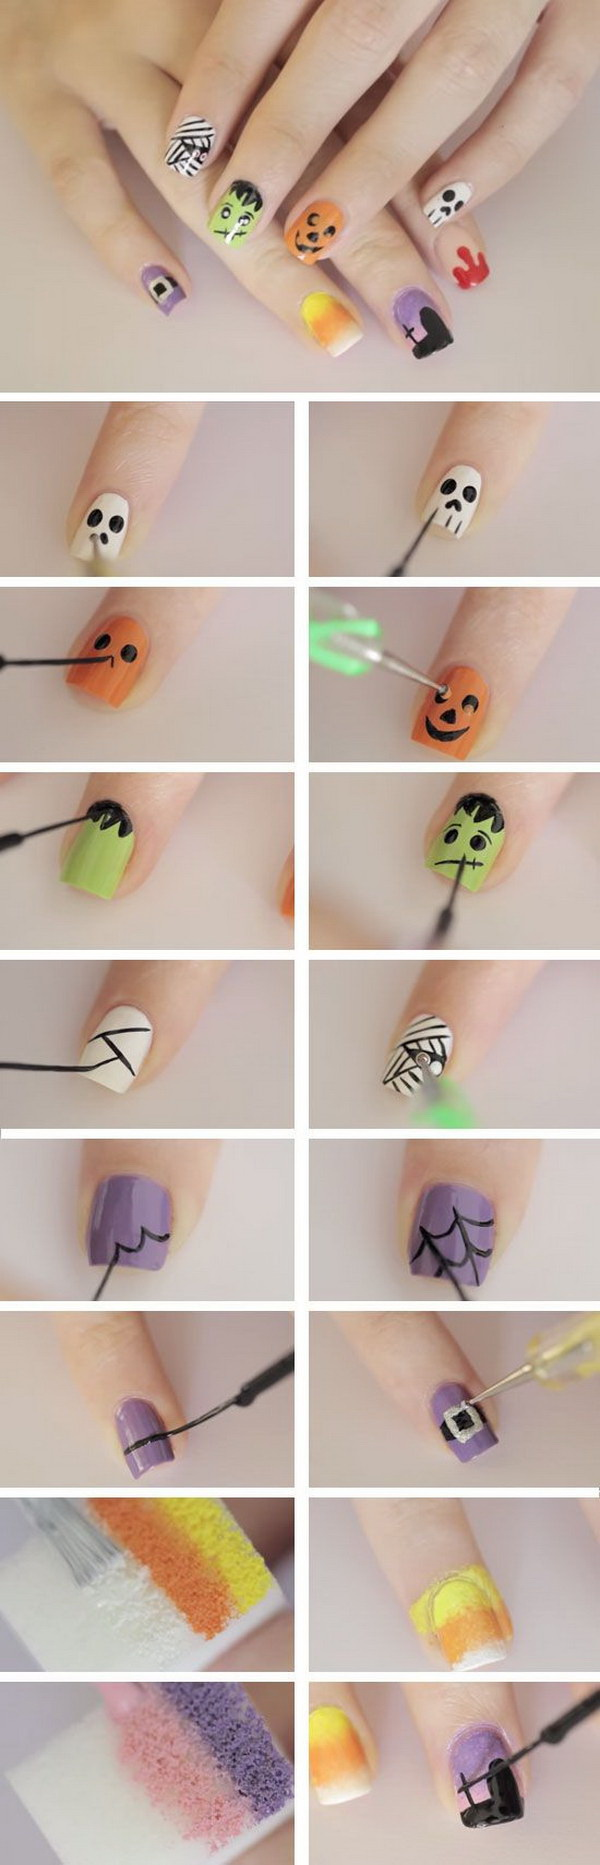 Diy Halloween Nail Art Designs With Step By Step Tutorials For Creative Juice